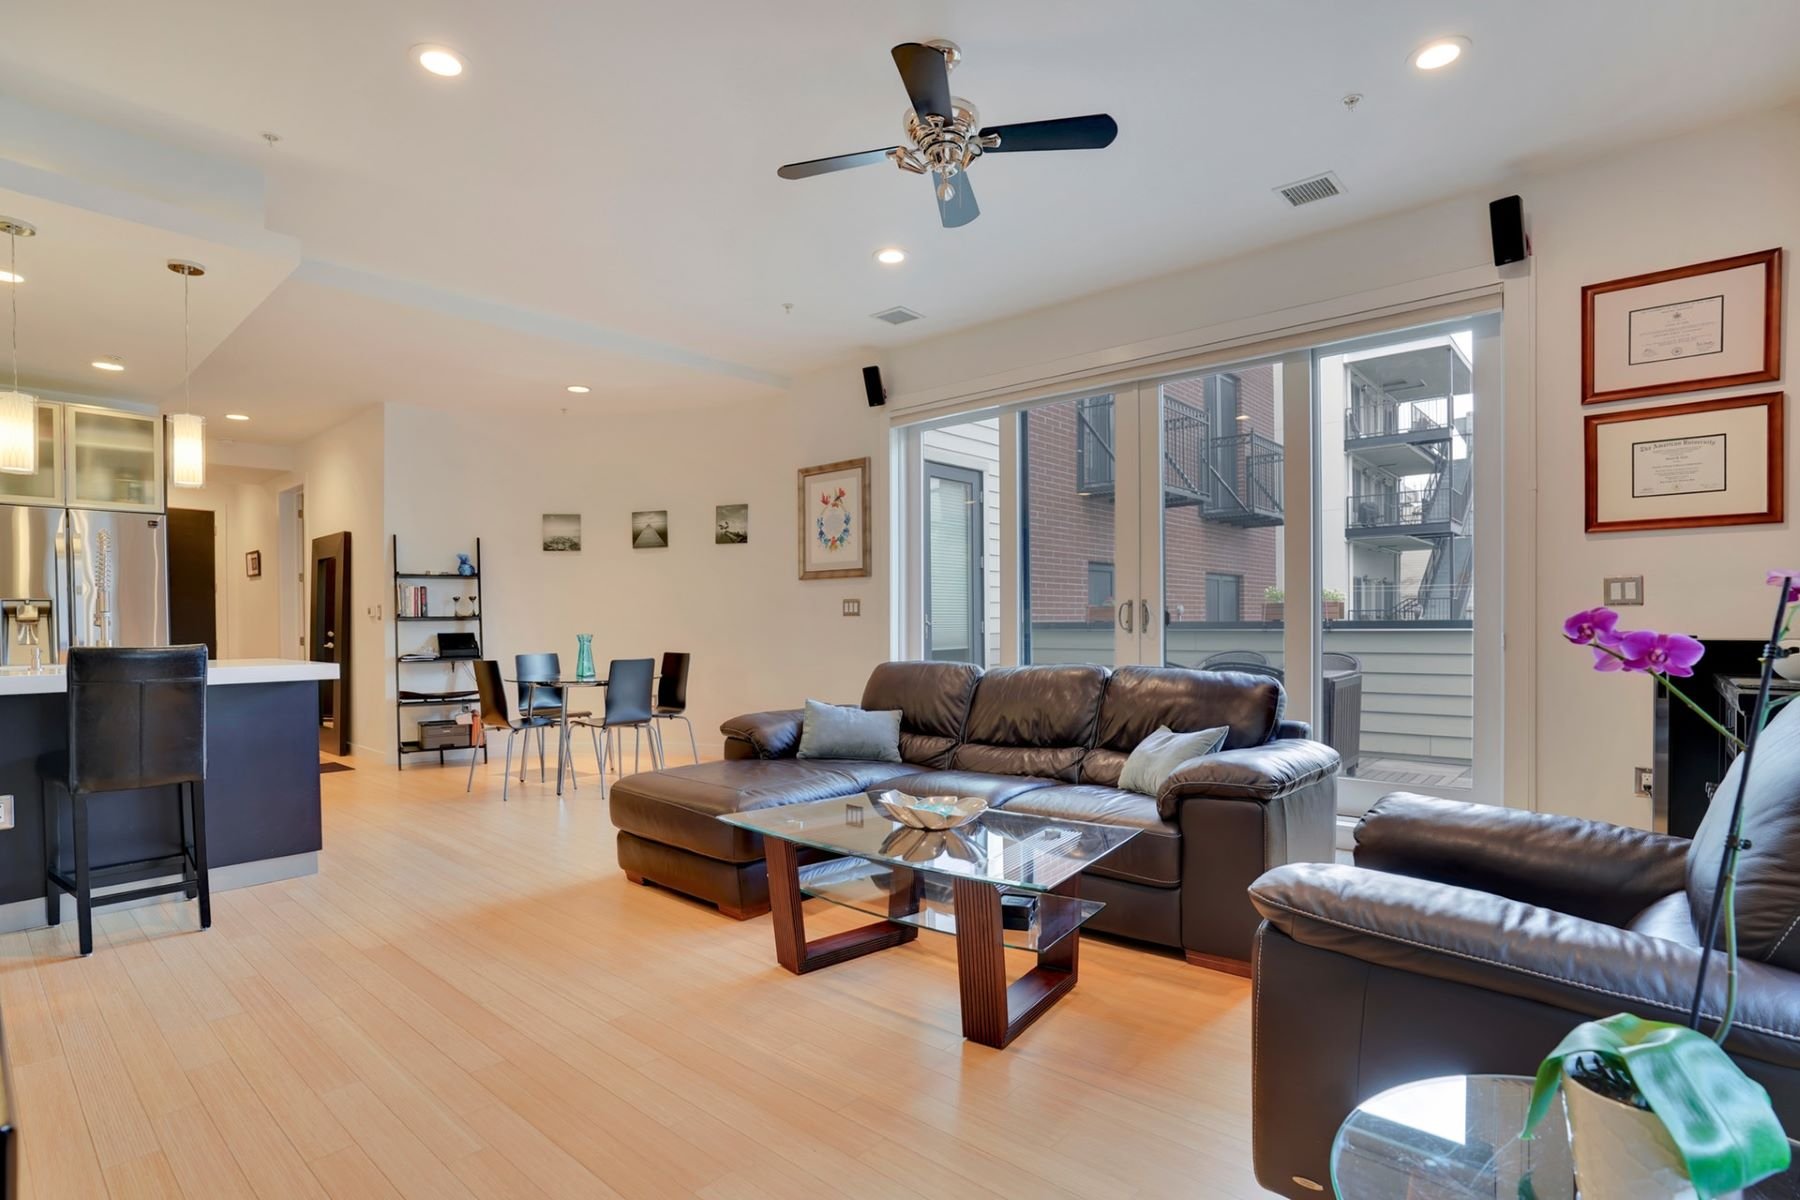 Condominiums for Sale at Exclusive Satori Lofts 1BR! 511 Madison Street #203 Hoboken, New Jersey 07030 United States